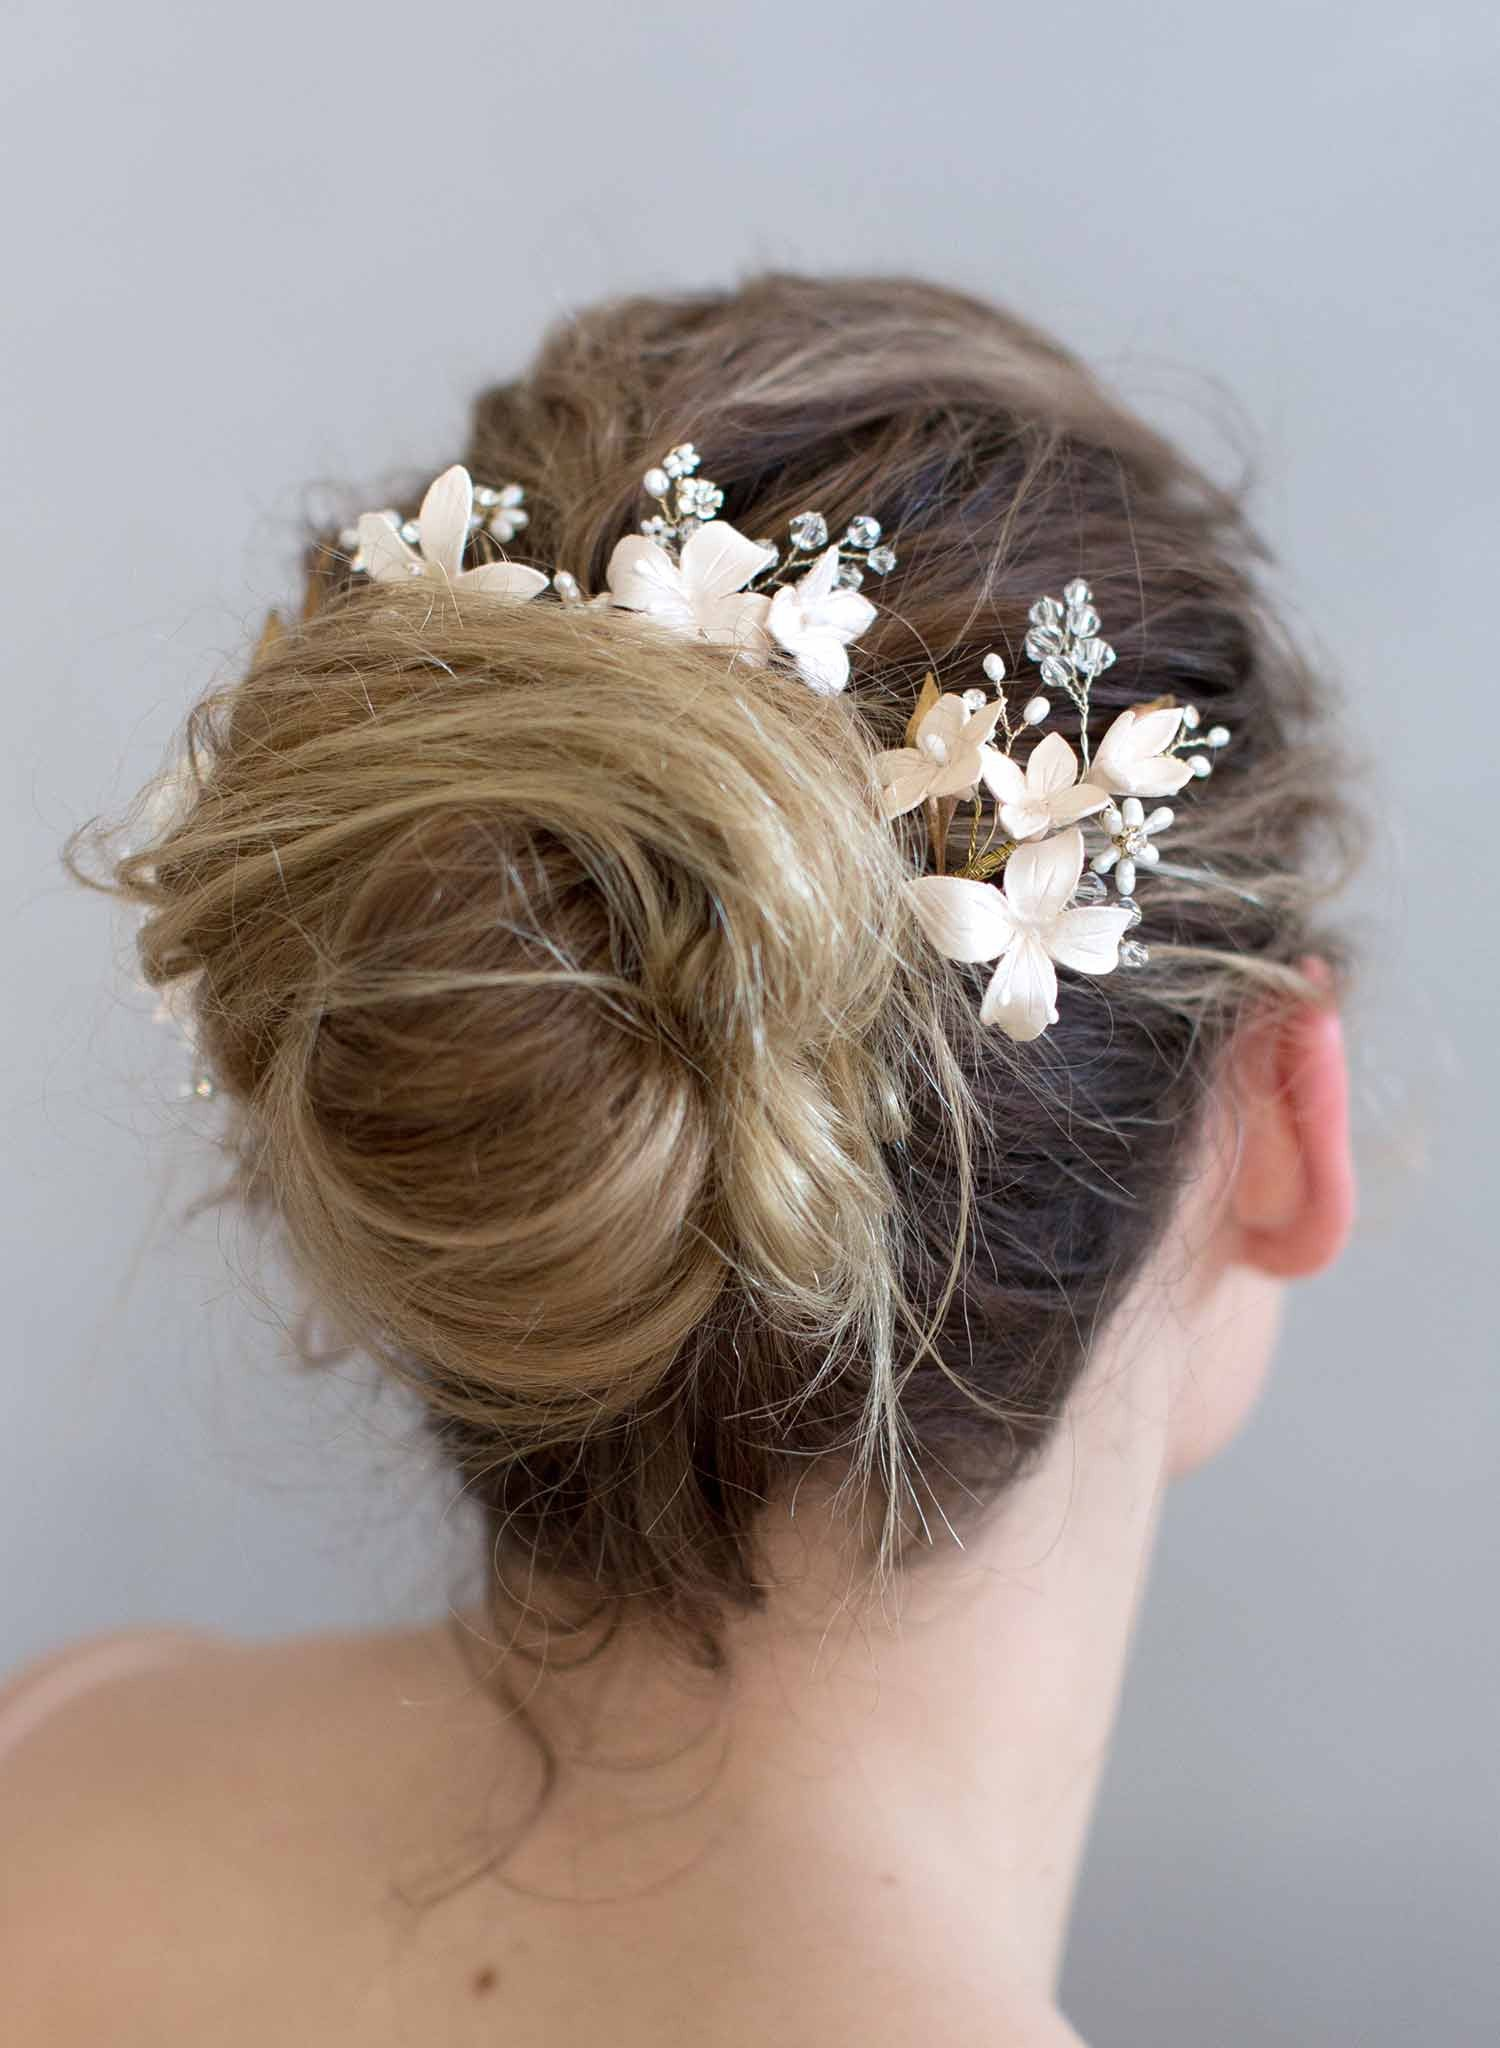 Cherry blossom hair pin and comb set - Style #768